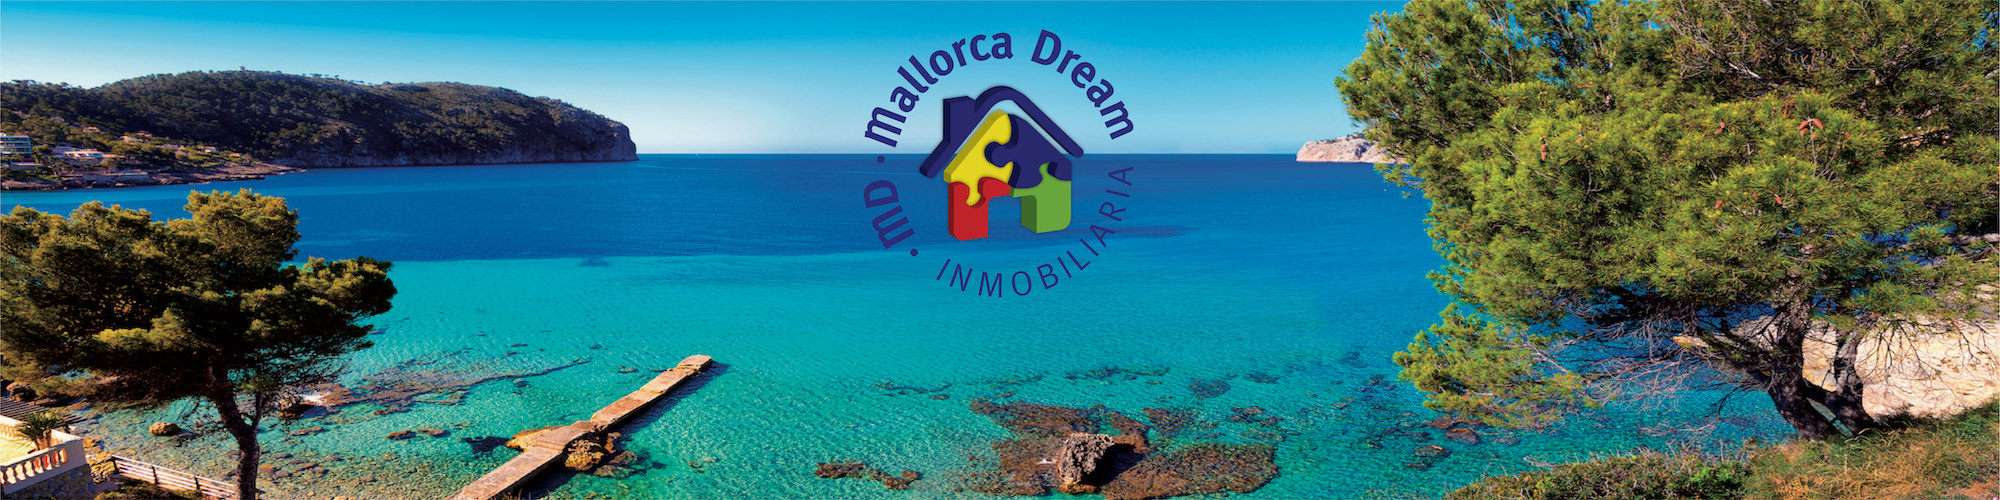 Mallorca Dream Team 2014 S.L.